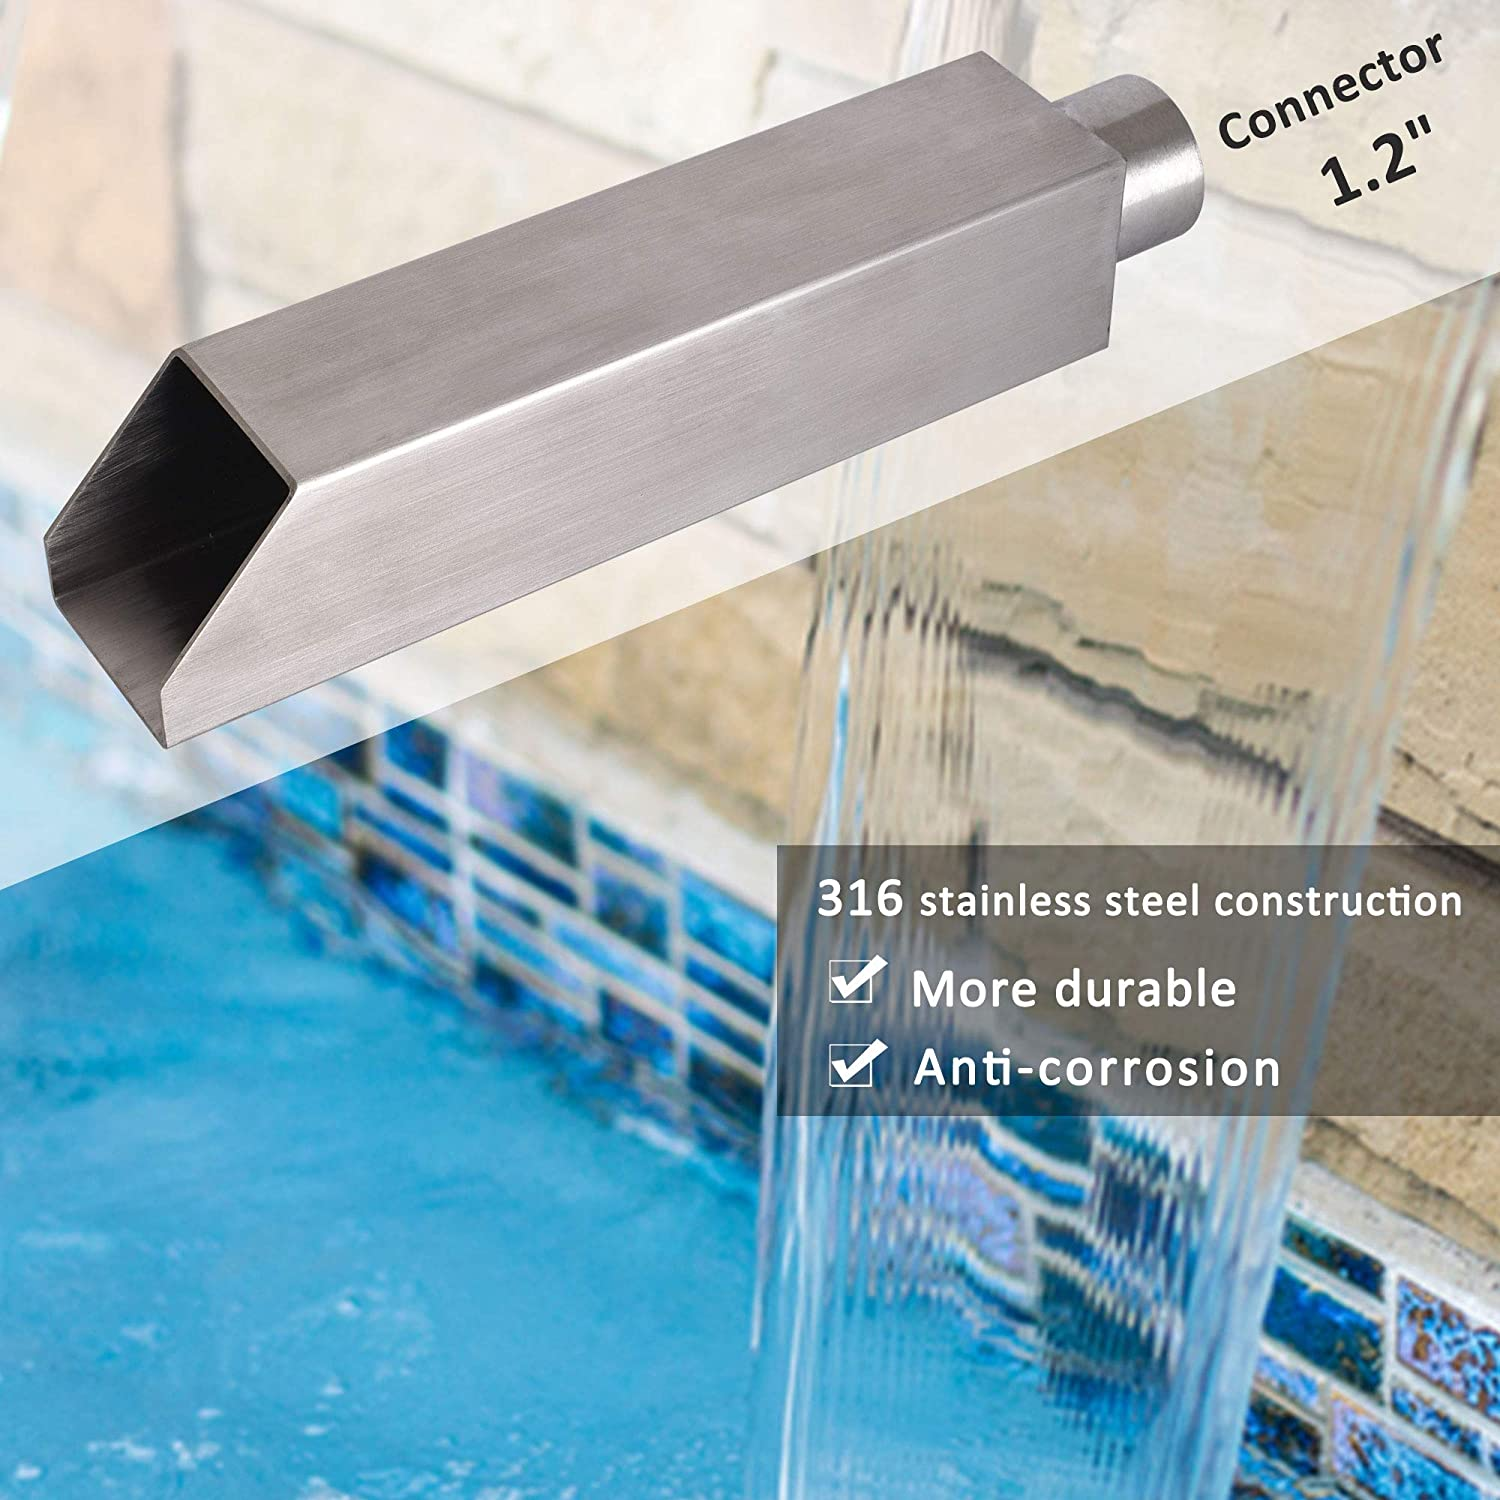 316 Nickel Brushed Stainless Steel Pool Scupper Spillway Fountain for Garden Pool Pond Fountain Water Feature SQ-1 YUDA 2 Square Water Fountain Spout Scupper